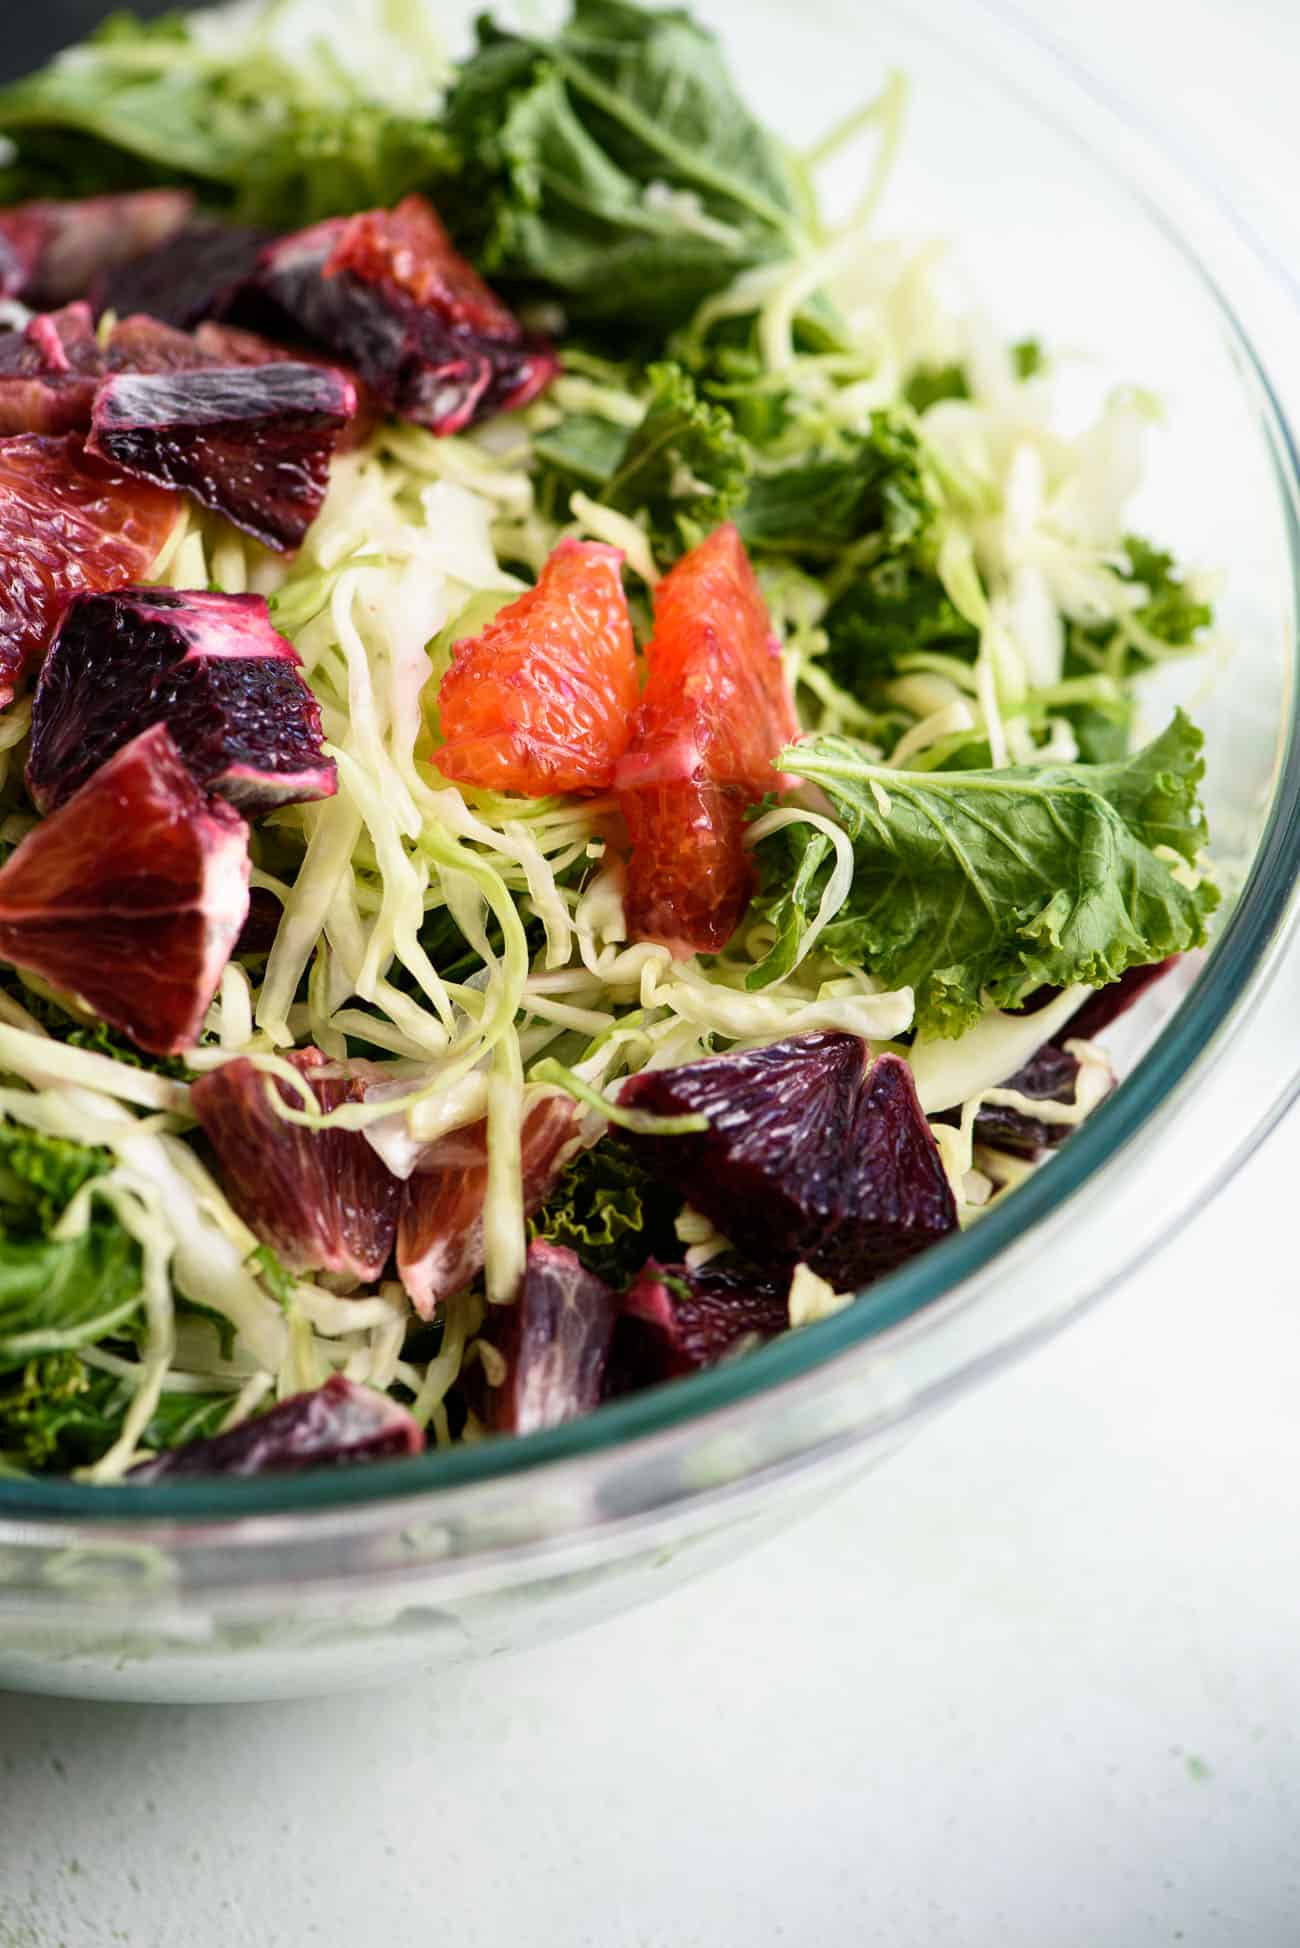 Close-up of Pyrex bowl with shredded cabbage, kale, and citrus